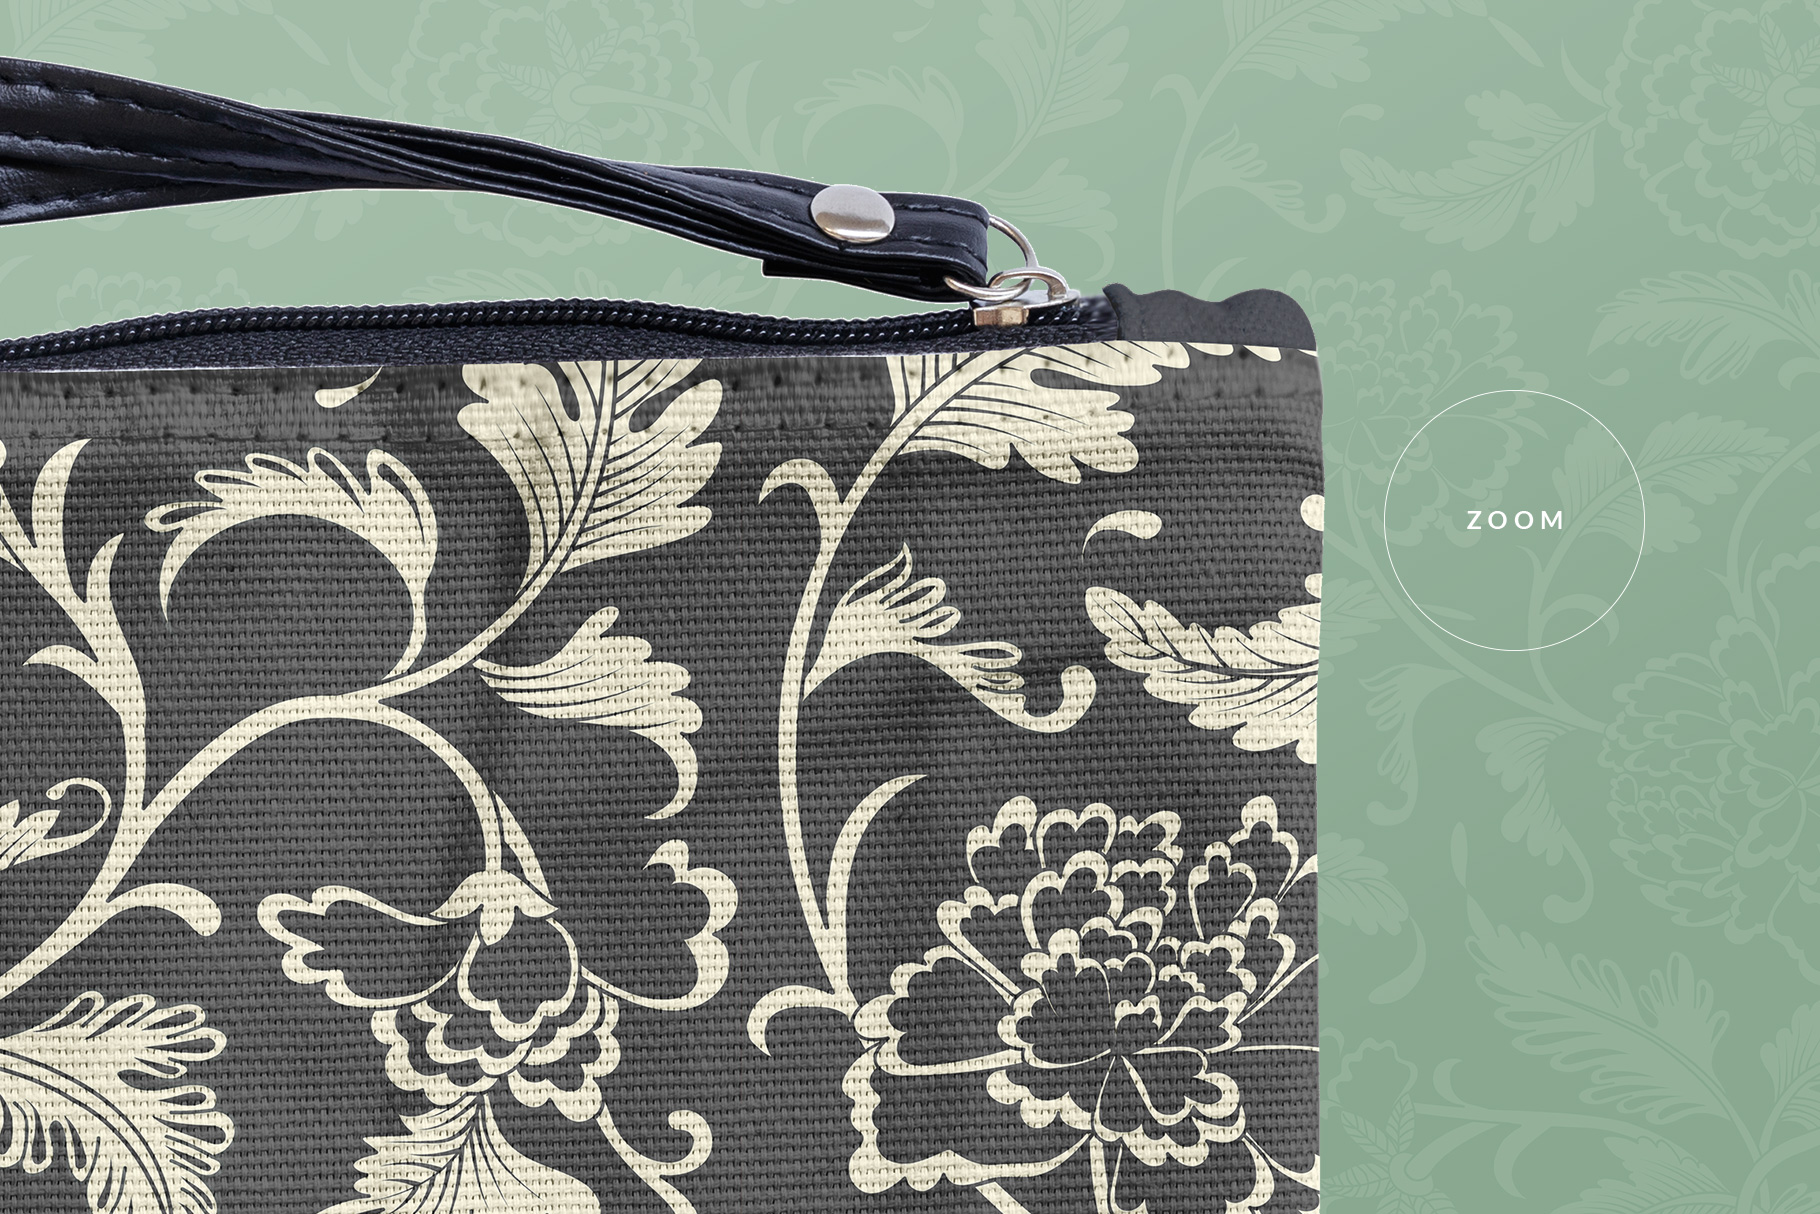 zoomed in image of the fabric wristlet bag mockup